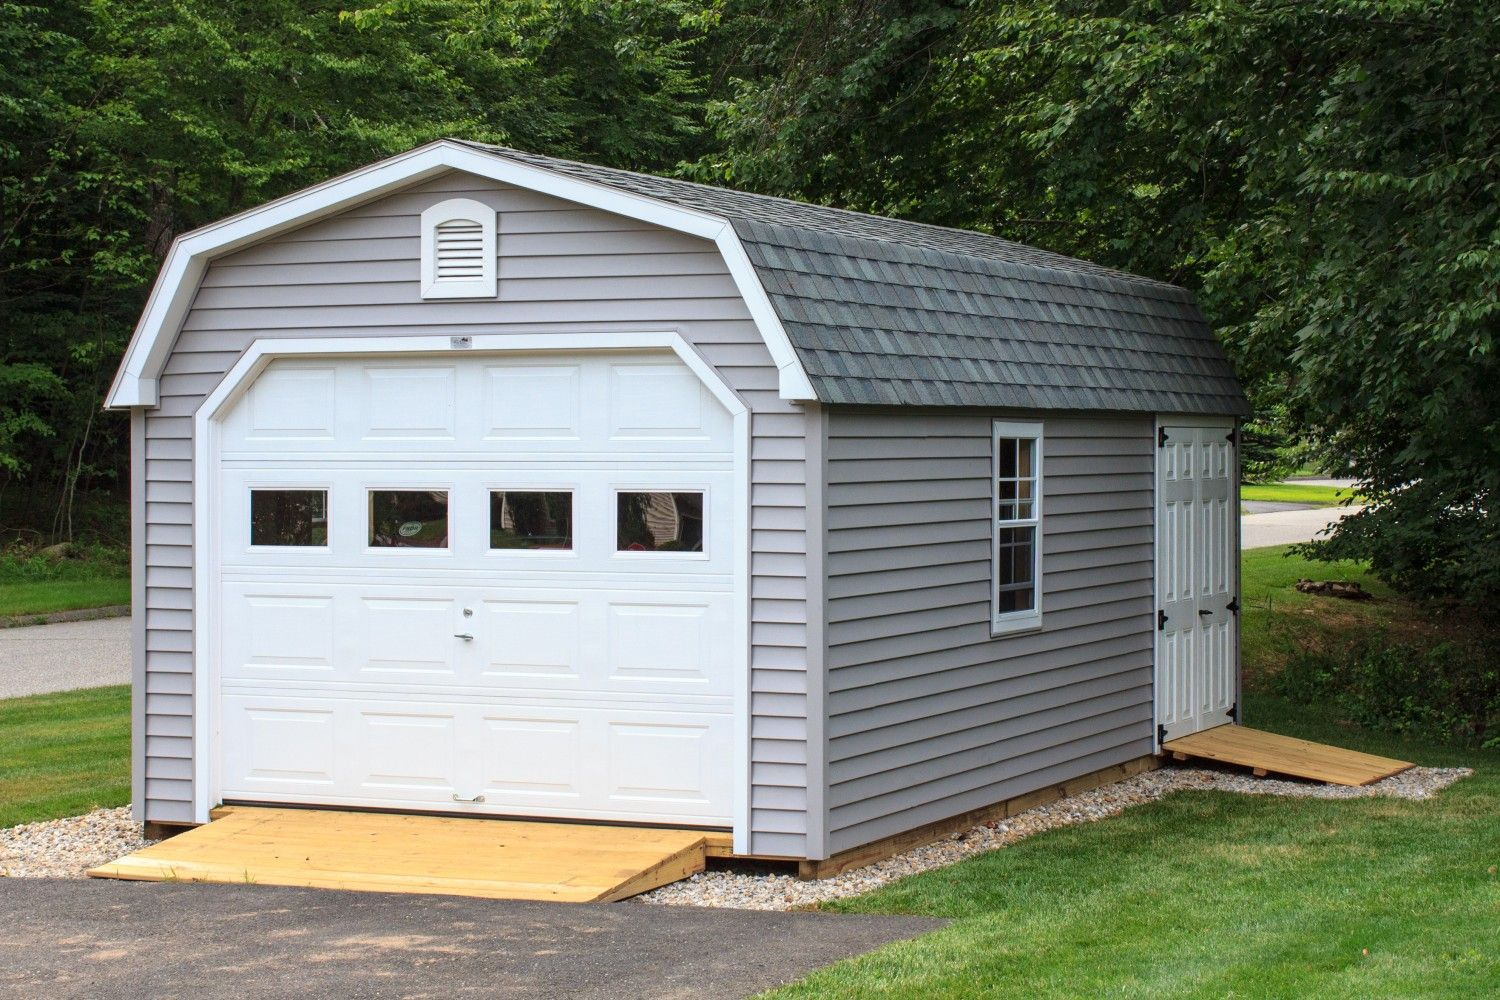 Garage Storage Buildings Sheds Storage Buildings Garages Mini Barn Cape Dutch Villa